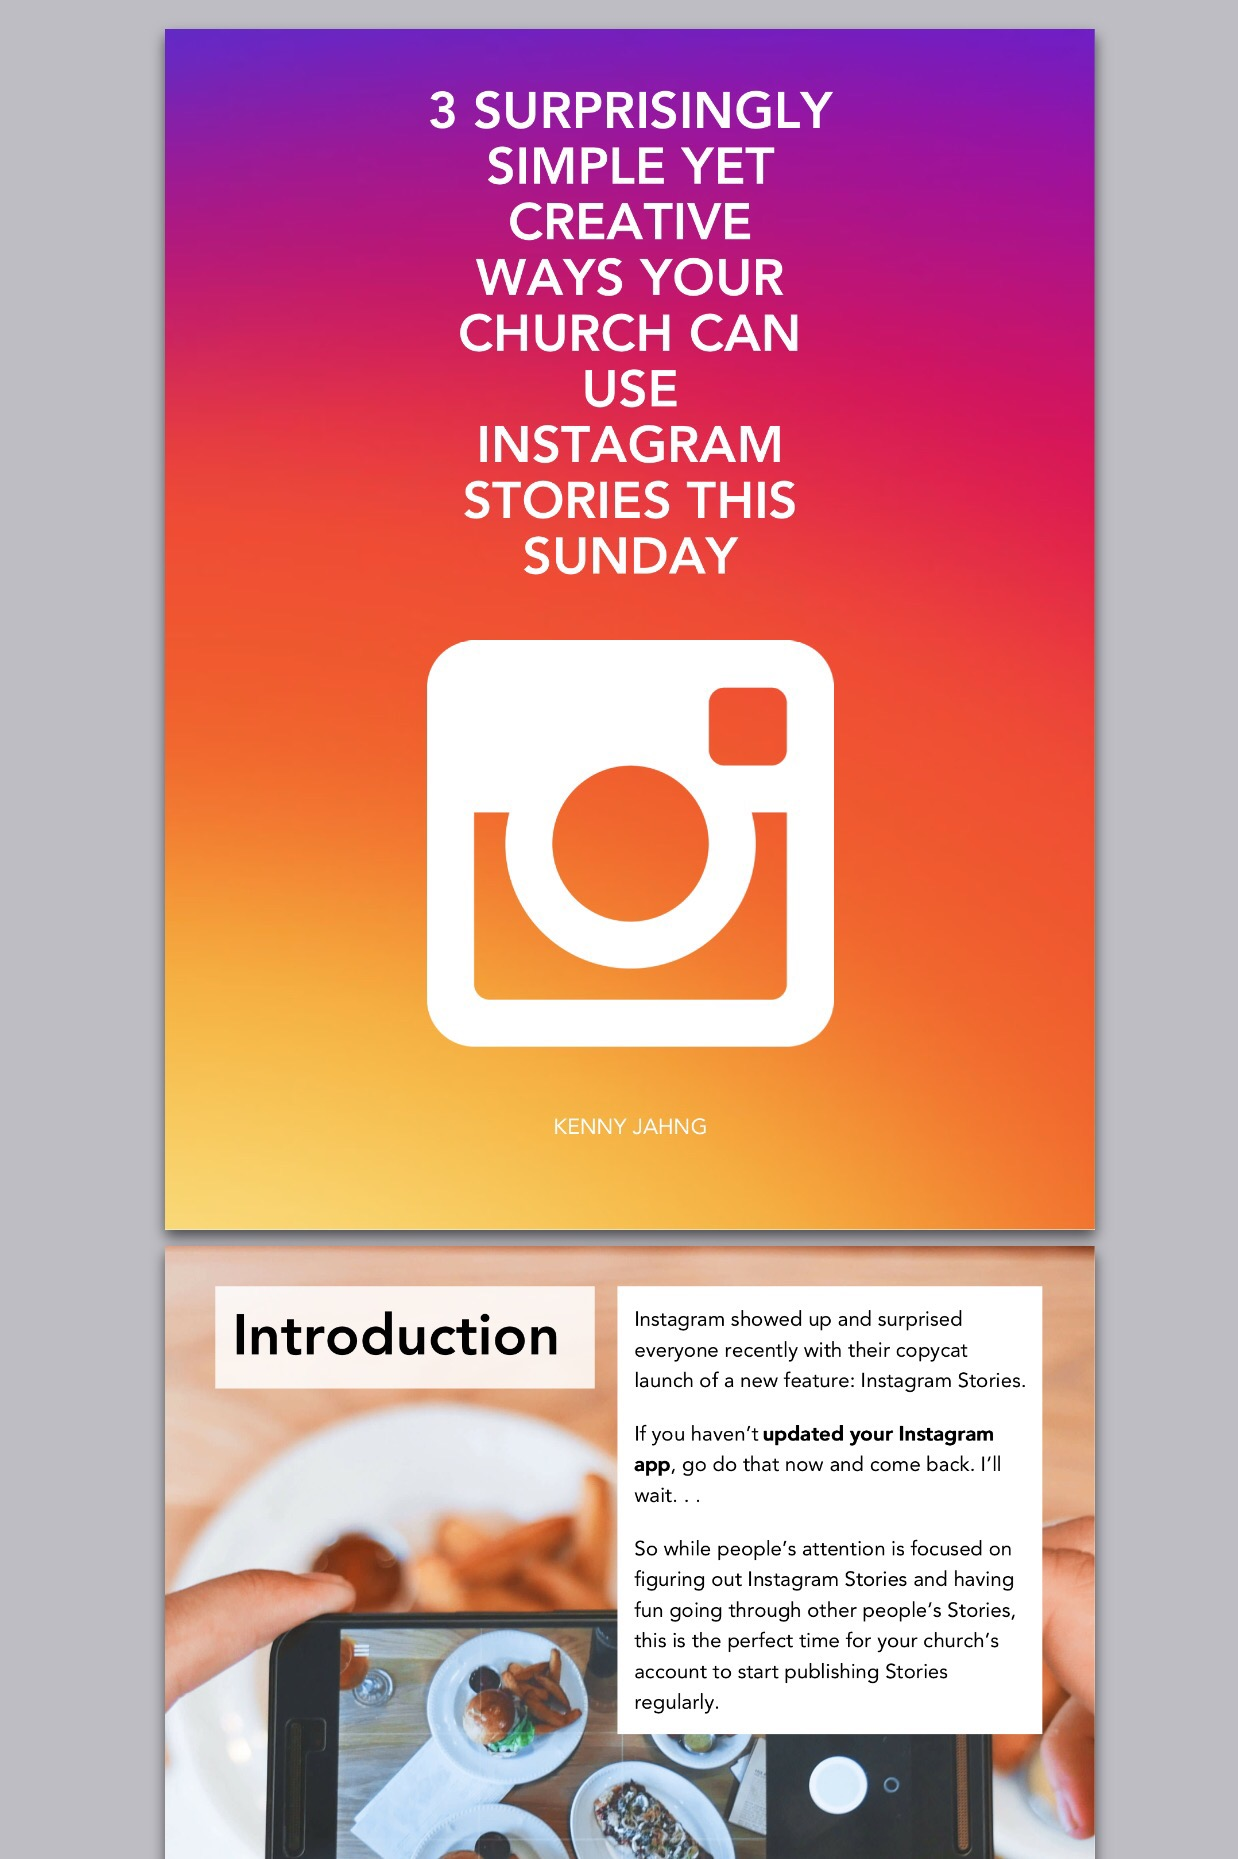 Instagram Now Available For Android: 3 Surprisingly Simple Yet Creative Ways Your Church Can